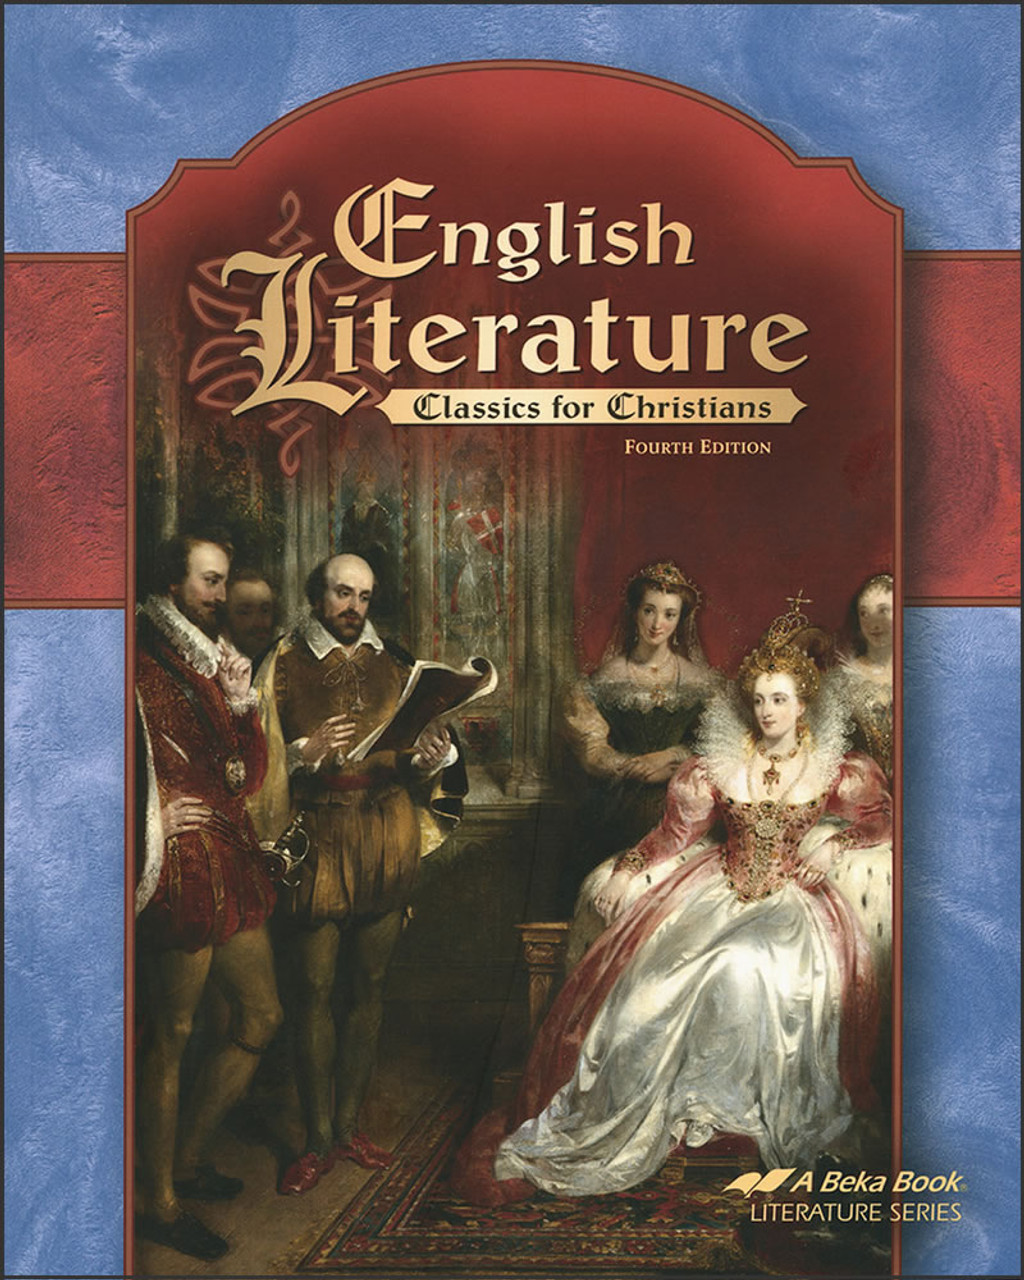 English Literature: Classics for Christians, 4th edition